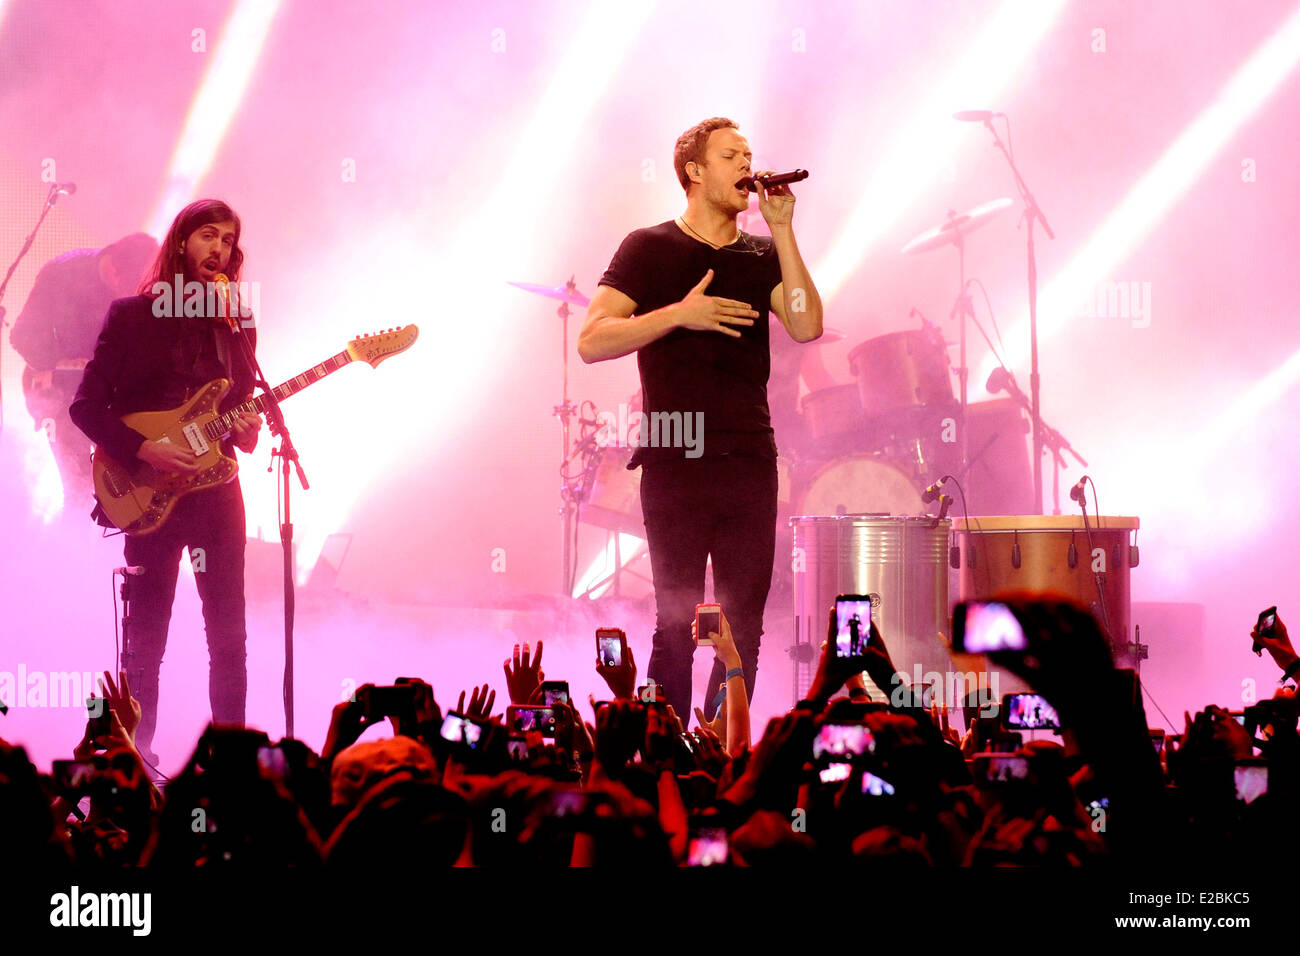 Imagine Dragons with lead singer Dan Reynolds performs at the 2014 MuchMusic Video Awards (MMVA). - Stock Image